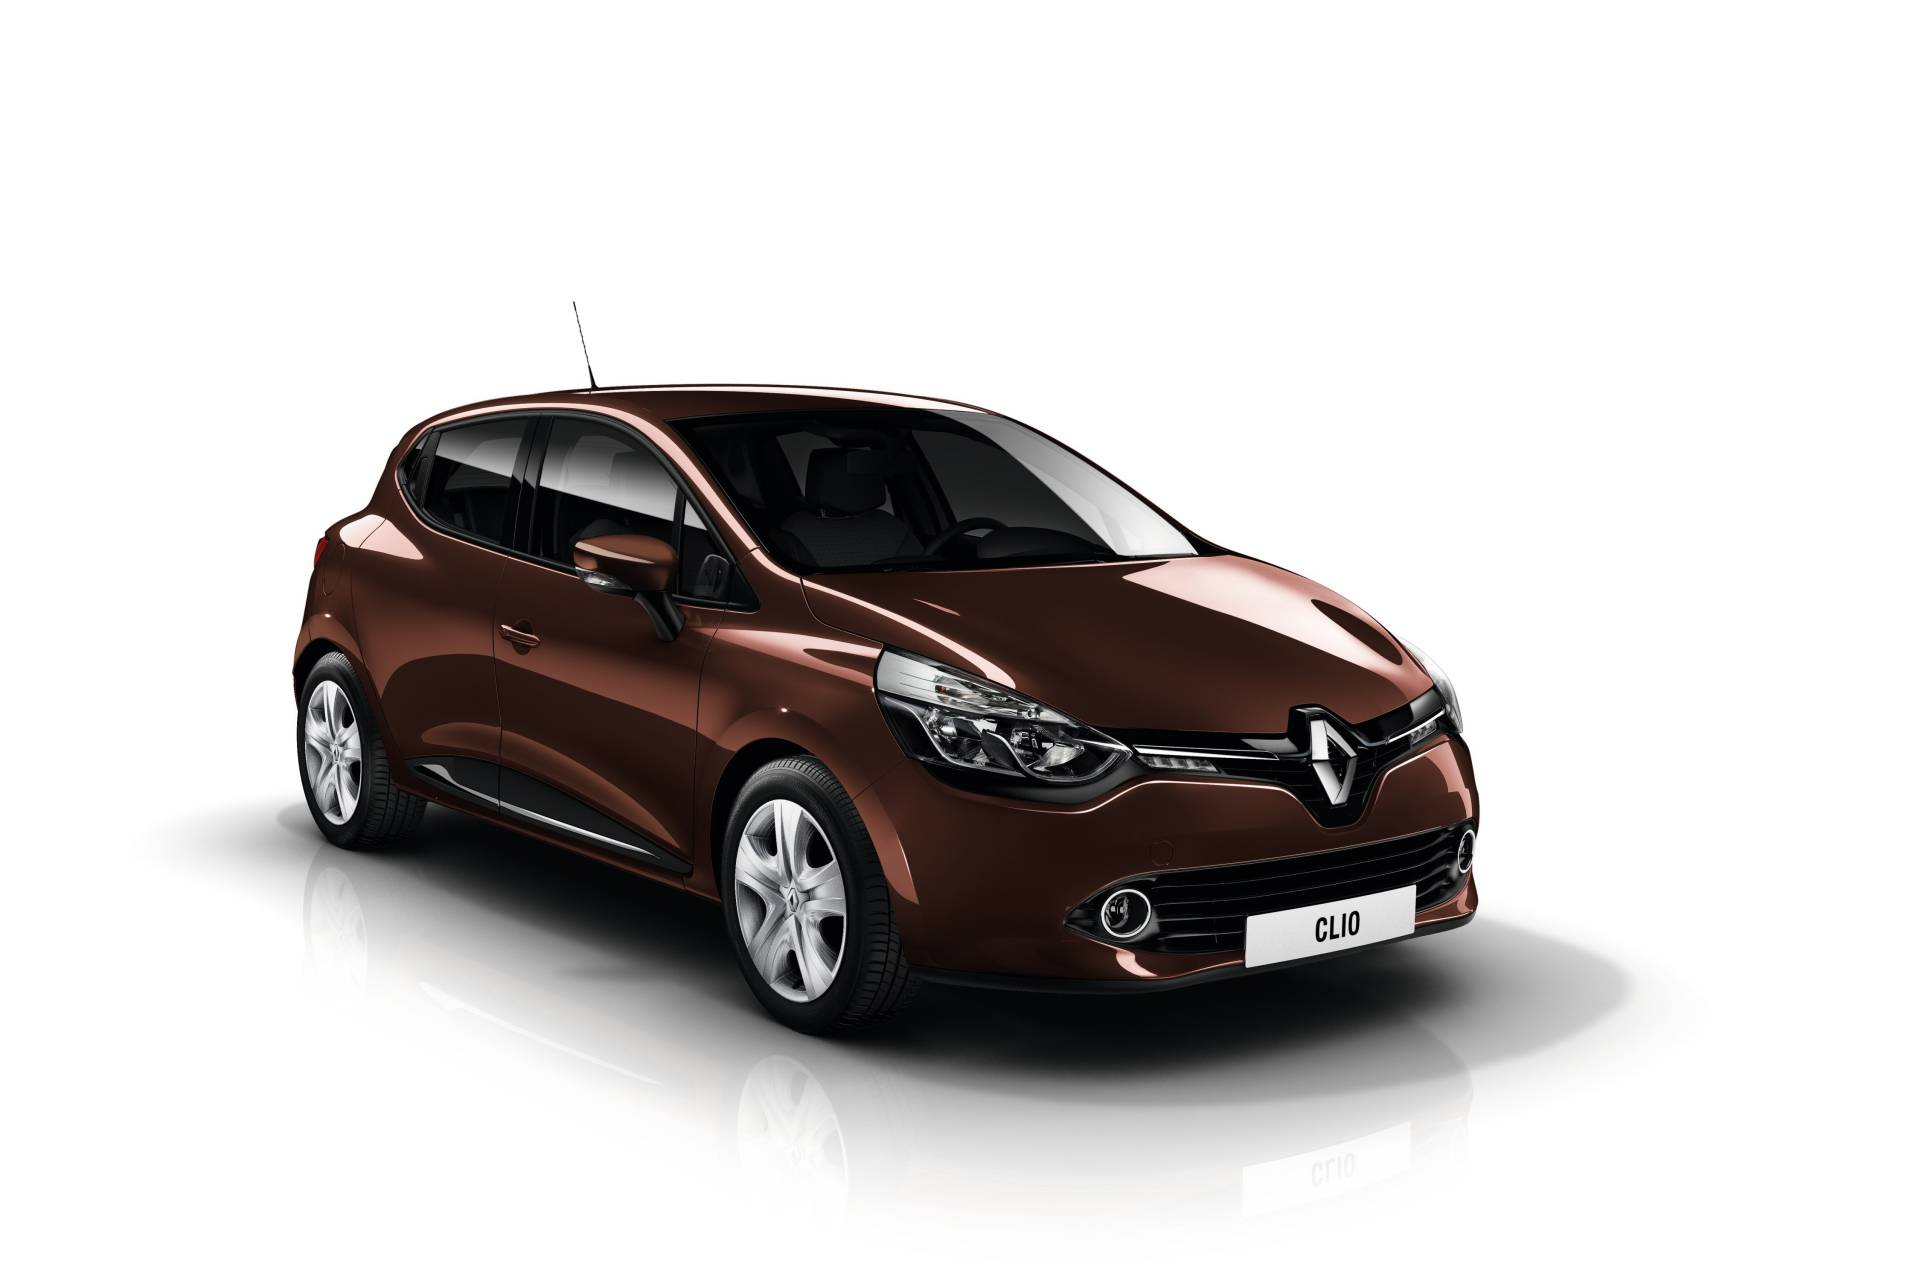 2013 Renault Clio News and Information | conceptcarz.com